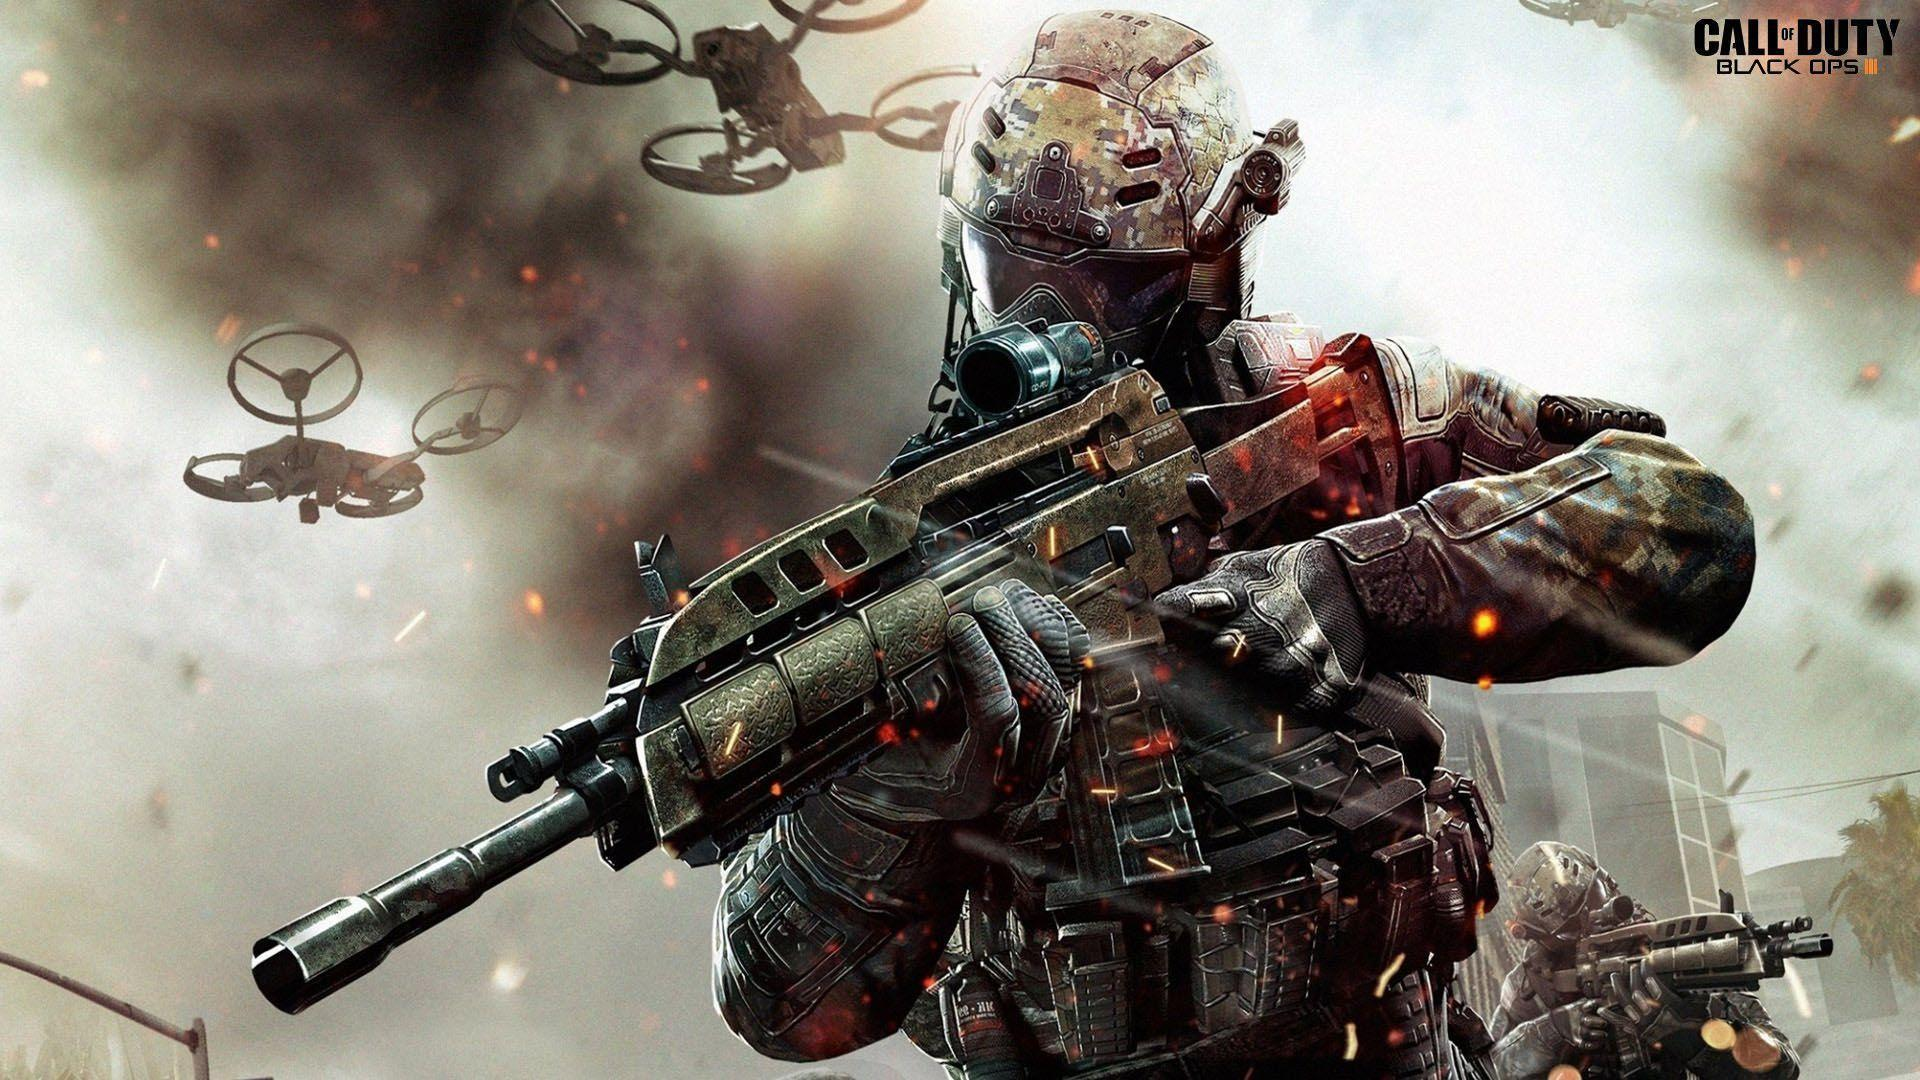 Call Of Duty Black Ops 3 Wallpapers Full HD Skull 1080p Hd Ipad ...